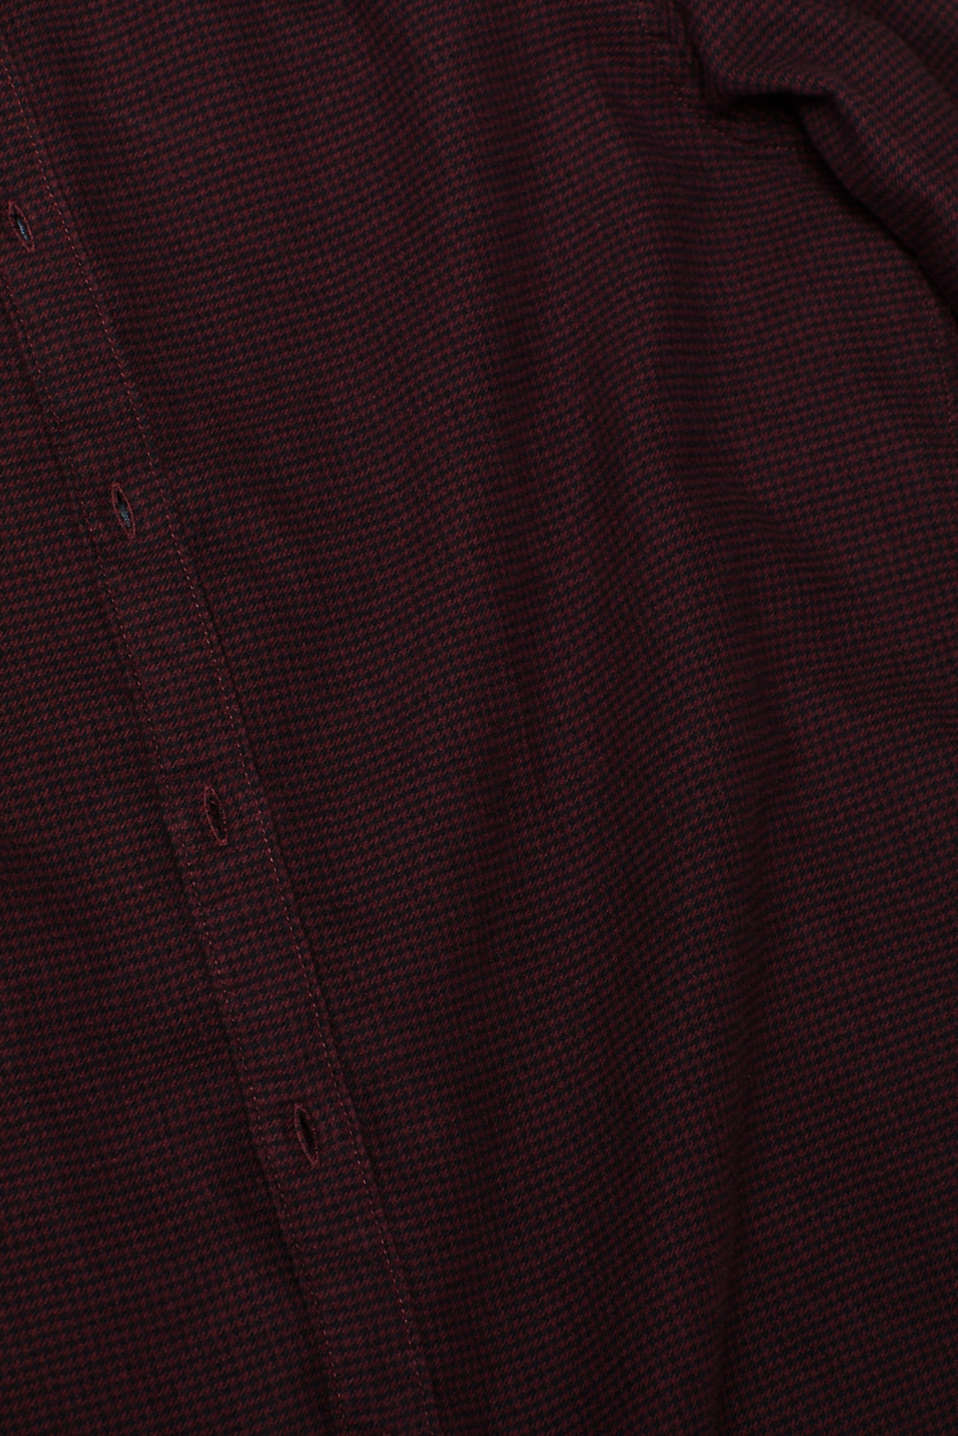 Shirts woven Slim fit, BORDEAUX RED, detail image number 4